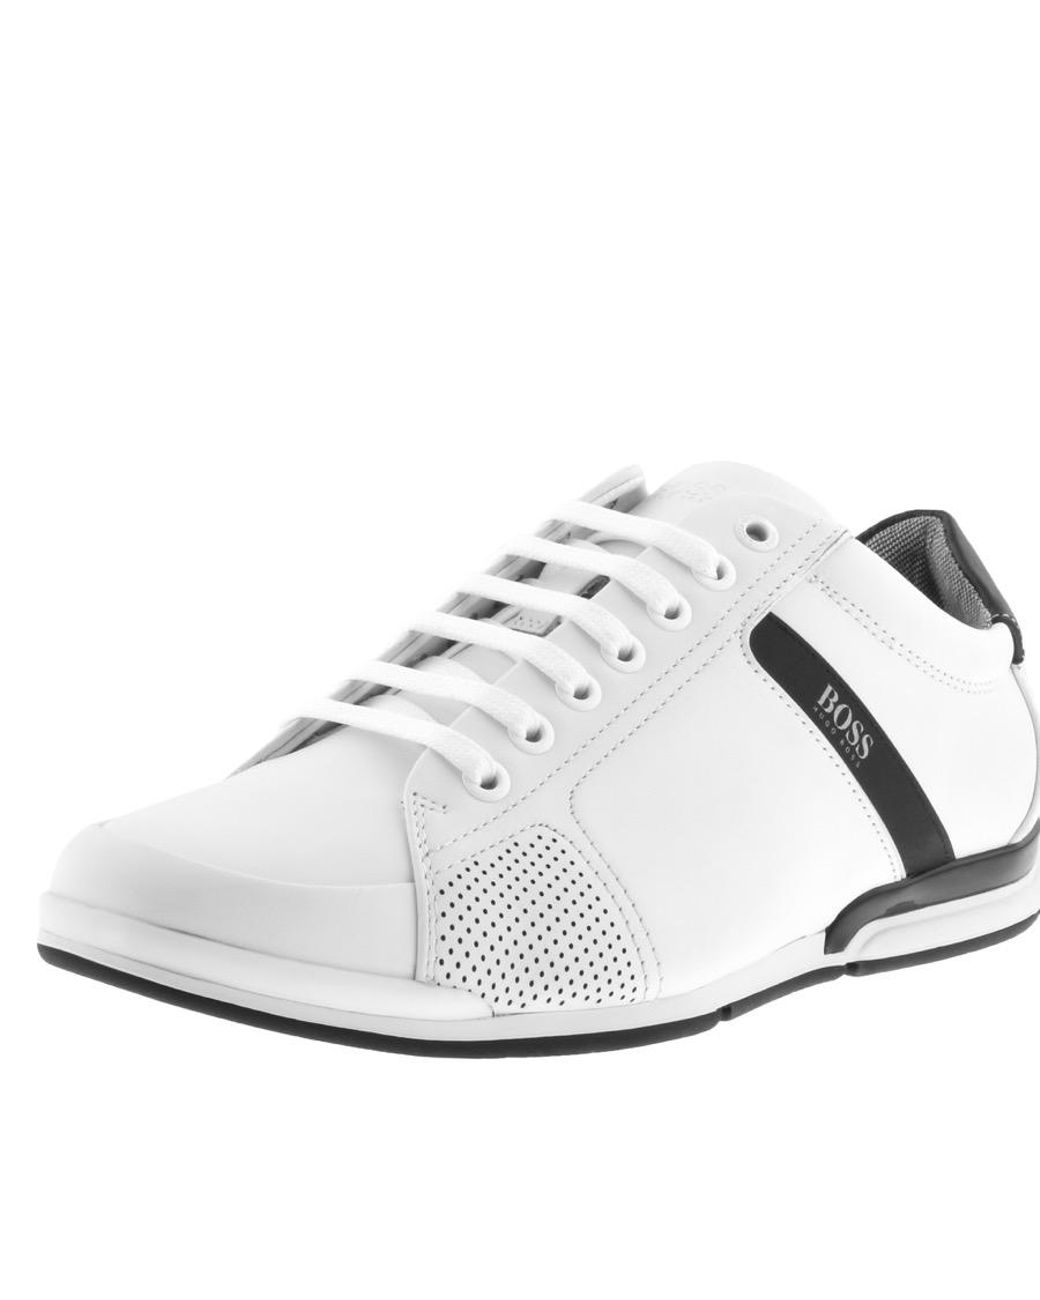 fbd872fb30 BOSS Athleisure Saturn Lowp Lux 4 Trainers White in White for Men - Lyst